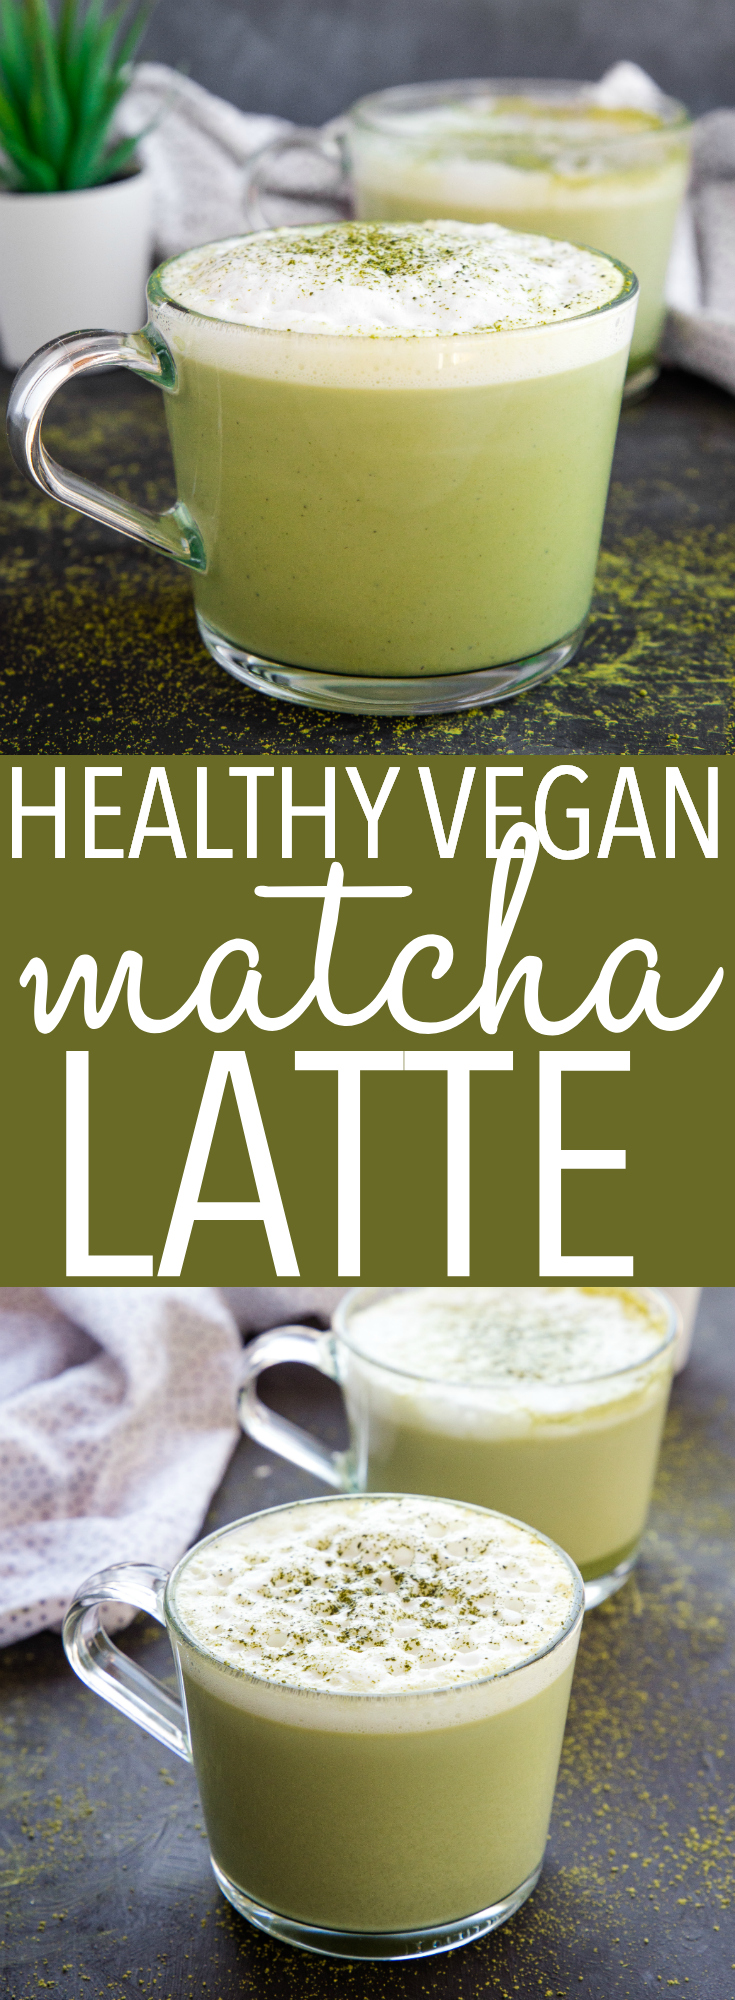 This Healthy Matcha Latte is a delicious way to enjoy the earthy flavour and health benefits of green tea, without refined sugar, dairy-free and vegan! Recipe from thebusybaker.ca! #matcha #greentea #healthy #starbucks #copycat #latte #coffee #drink #green #vegan #dairyfree #coconut #soy #almond via @busybakerblog